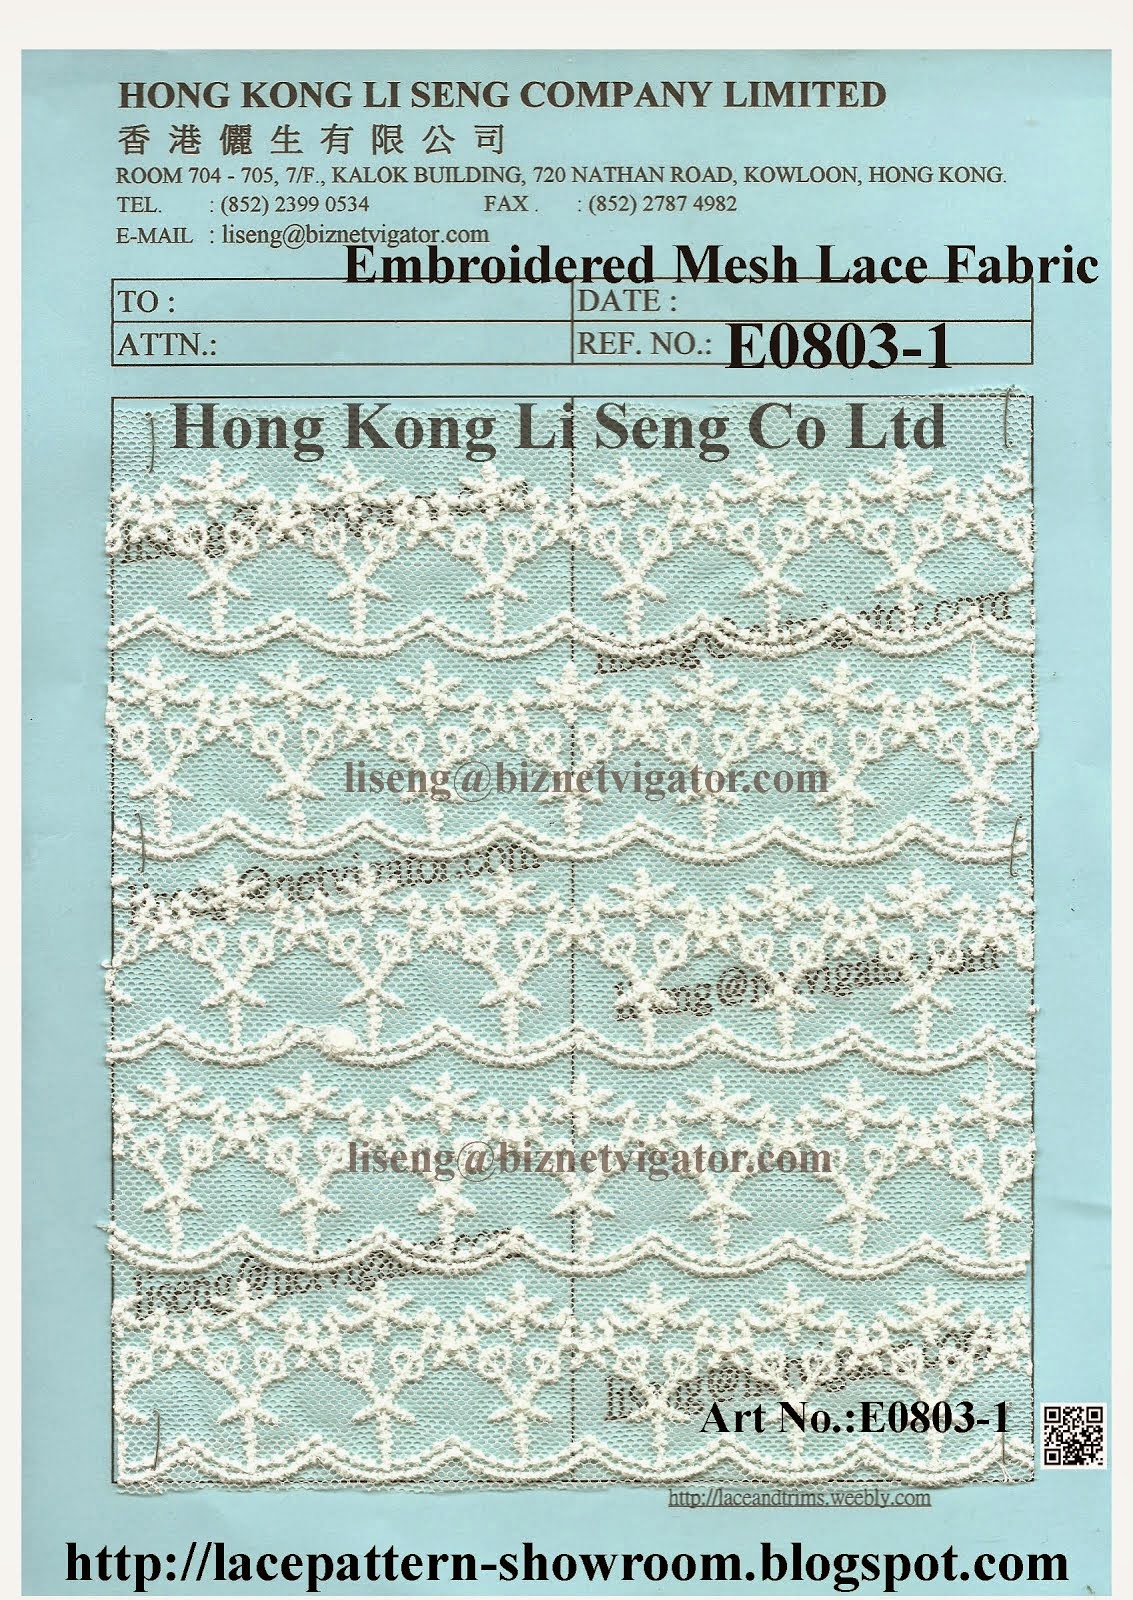 Embroidered Mesh Lace Fabric Wholesale Manufacturer Supplier - Hong Kong Li Seng Co Ltd